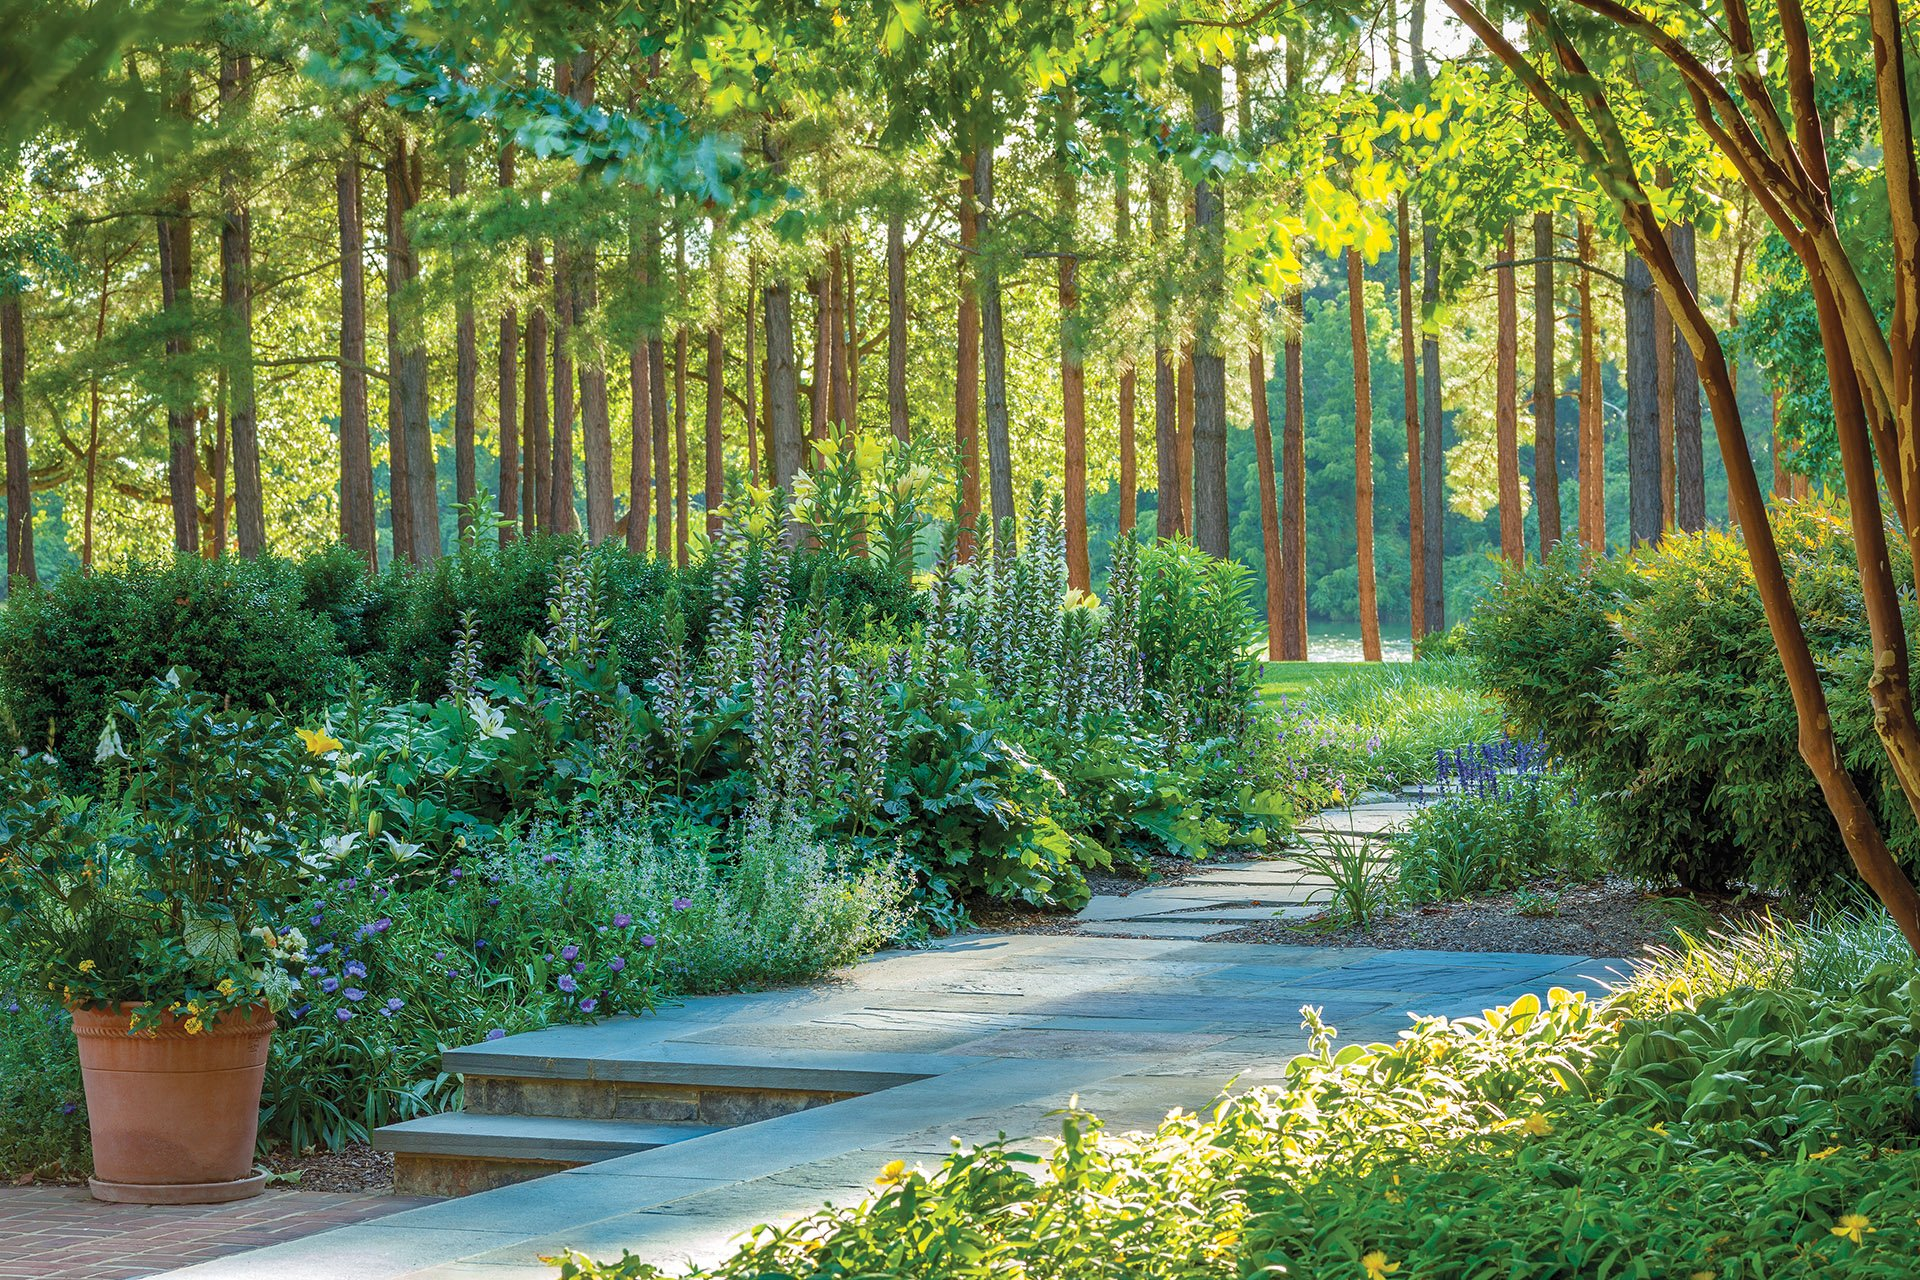 Bluestone walkway flanked by lush perennials including acanthus, lilies, coneflowers and nepeta.